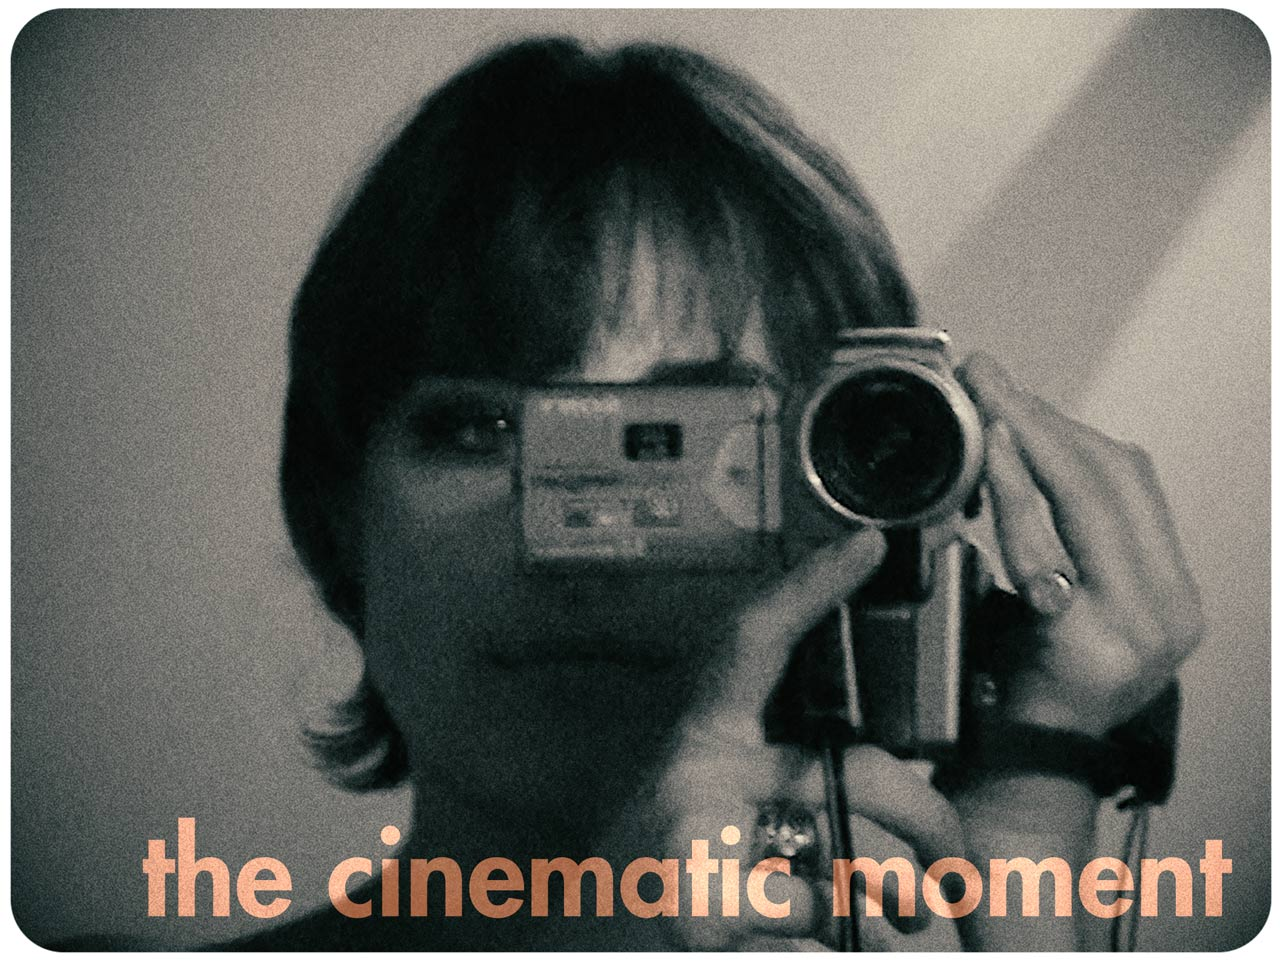 Directors Lounge, the cinematic moment, an exhibition at Tor218 Artlab during the Berlin Art Week 2021.